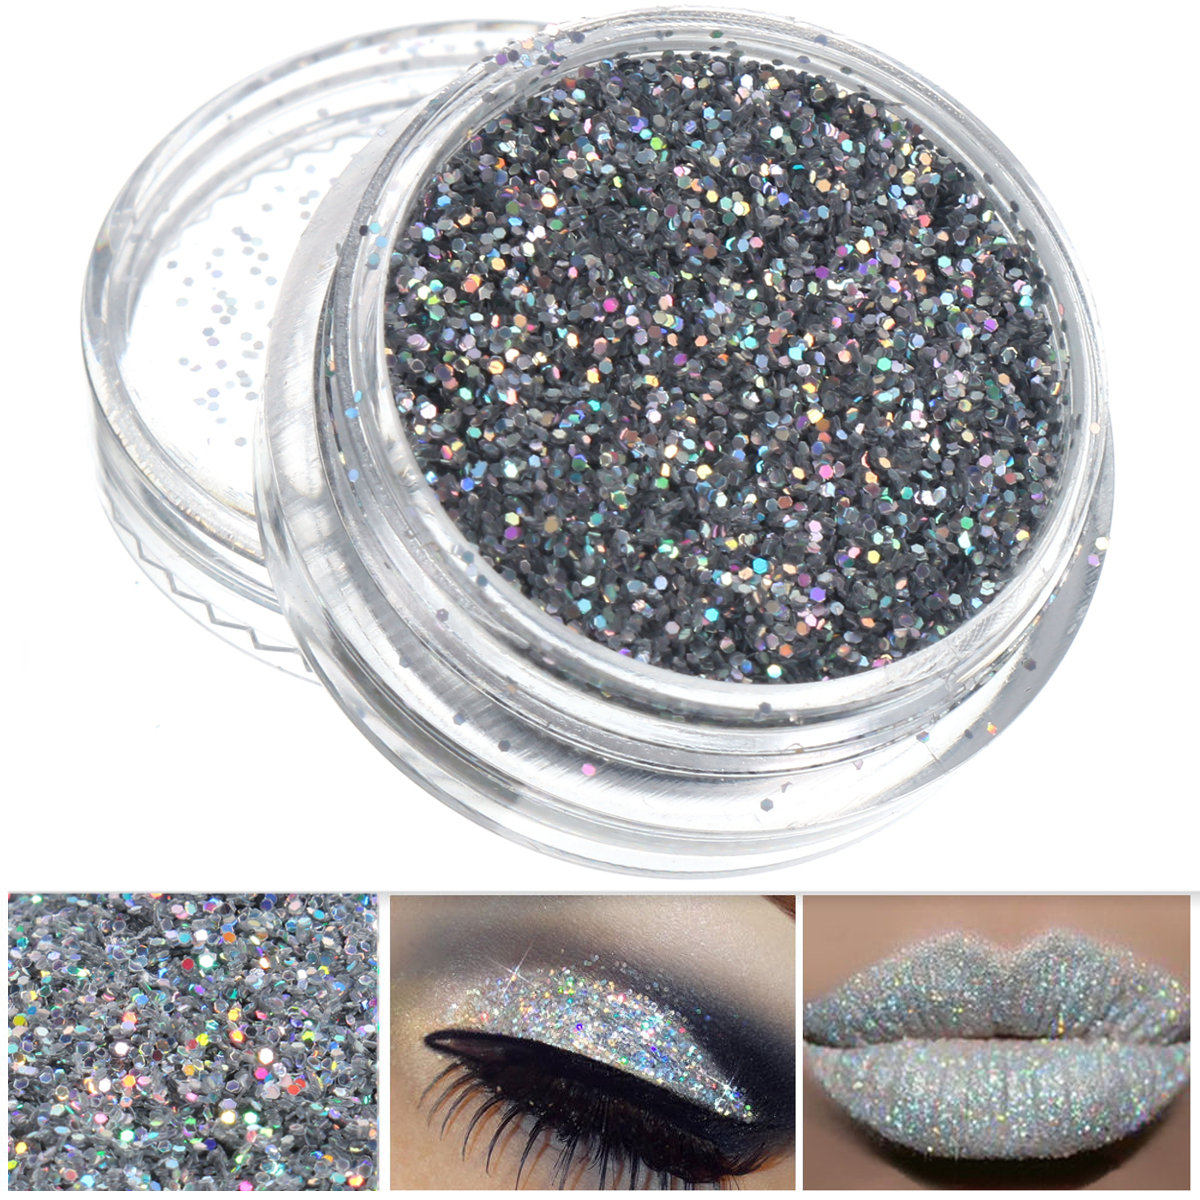 Silver Glitter Nail Decoration Powder Eye Shadow Pigment Sparkly Makeup 0.4mm 3g